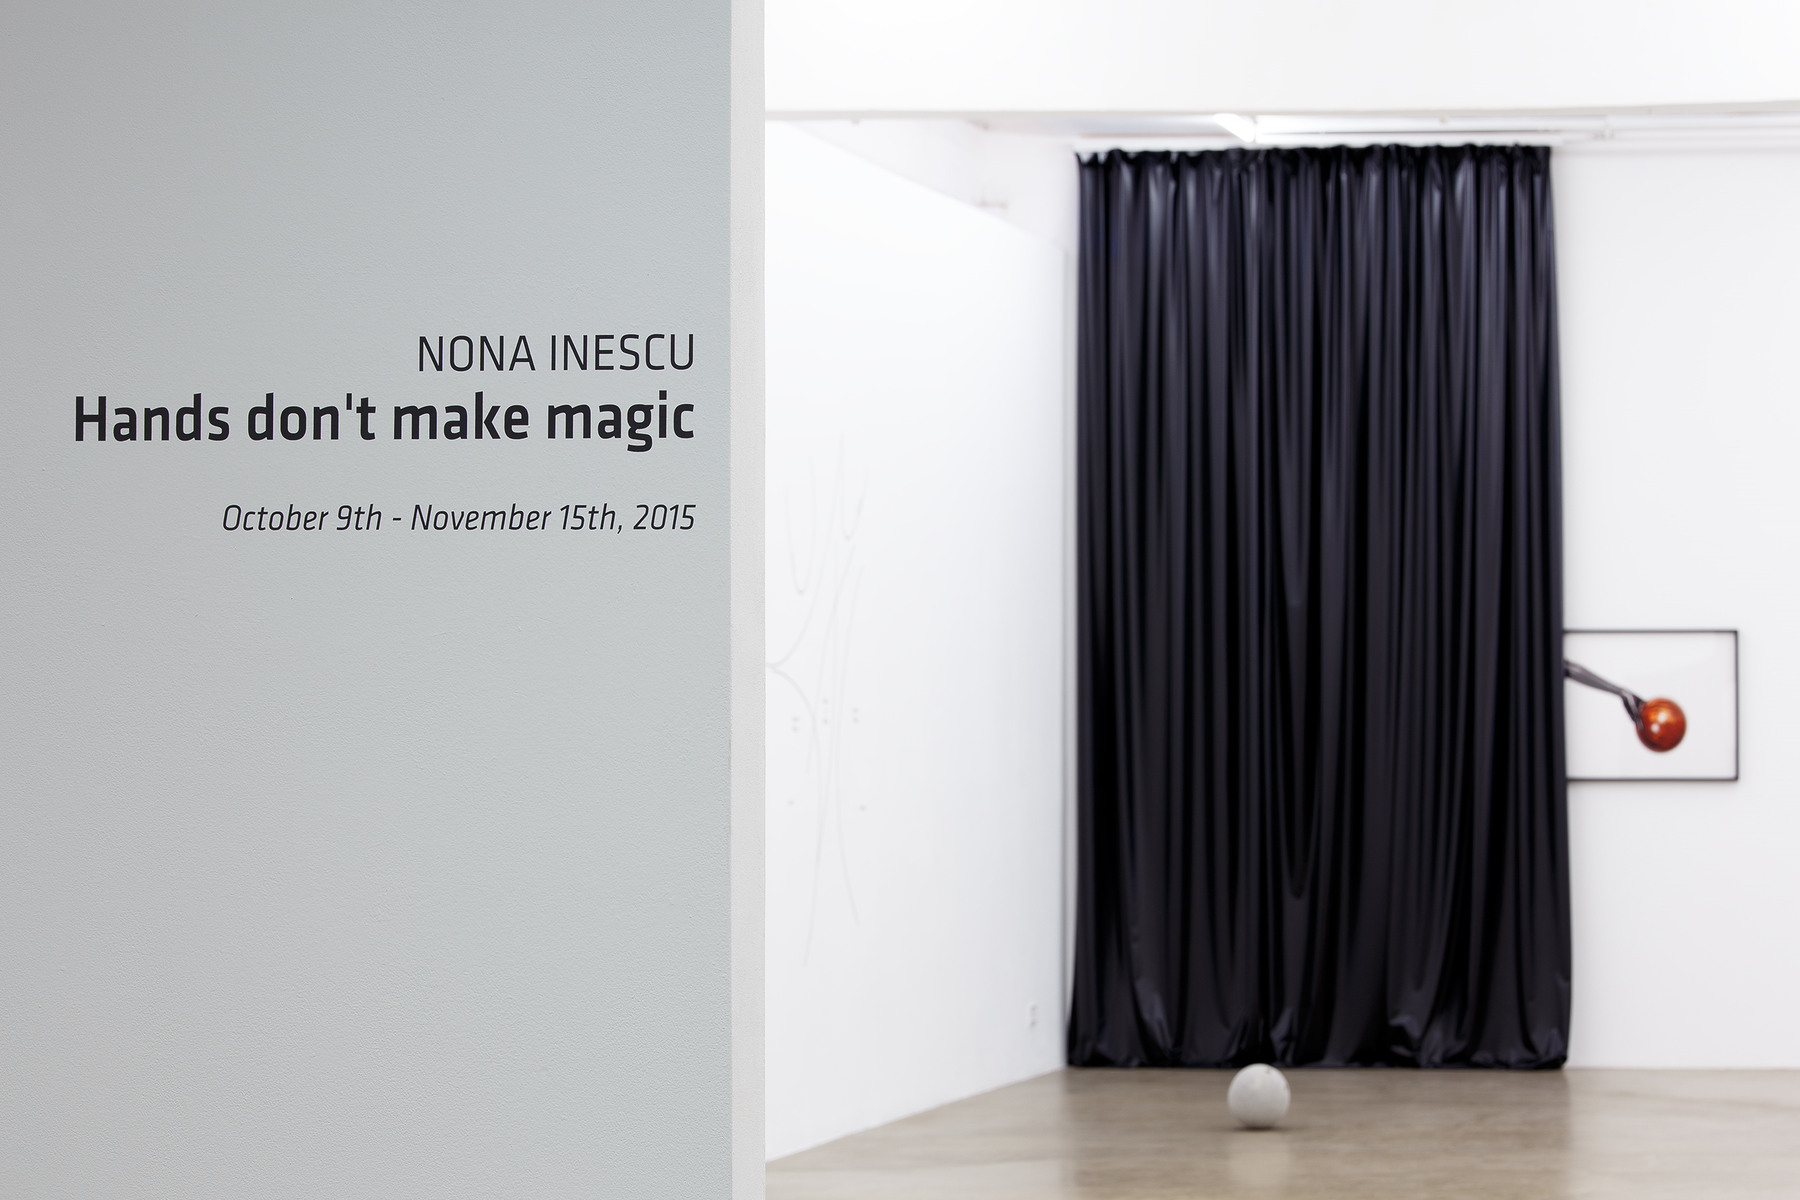 Hands don't make magic, exhibition view (1)